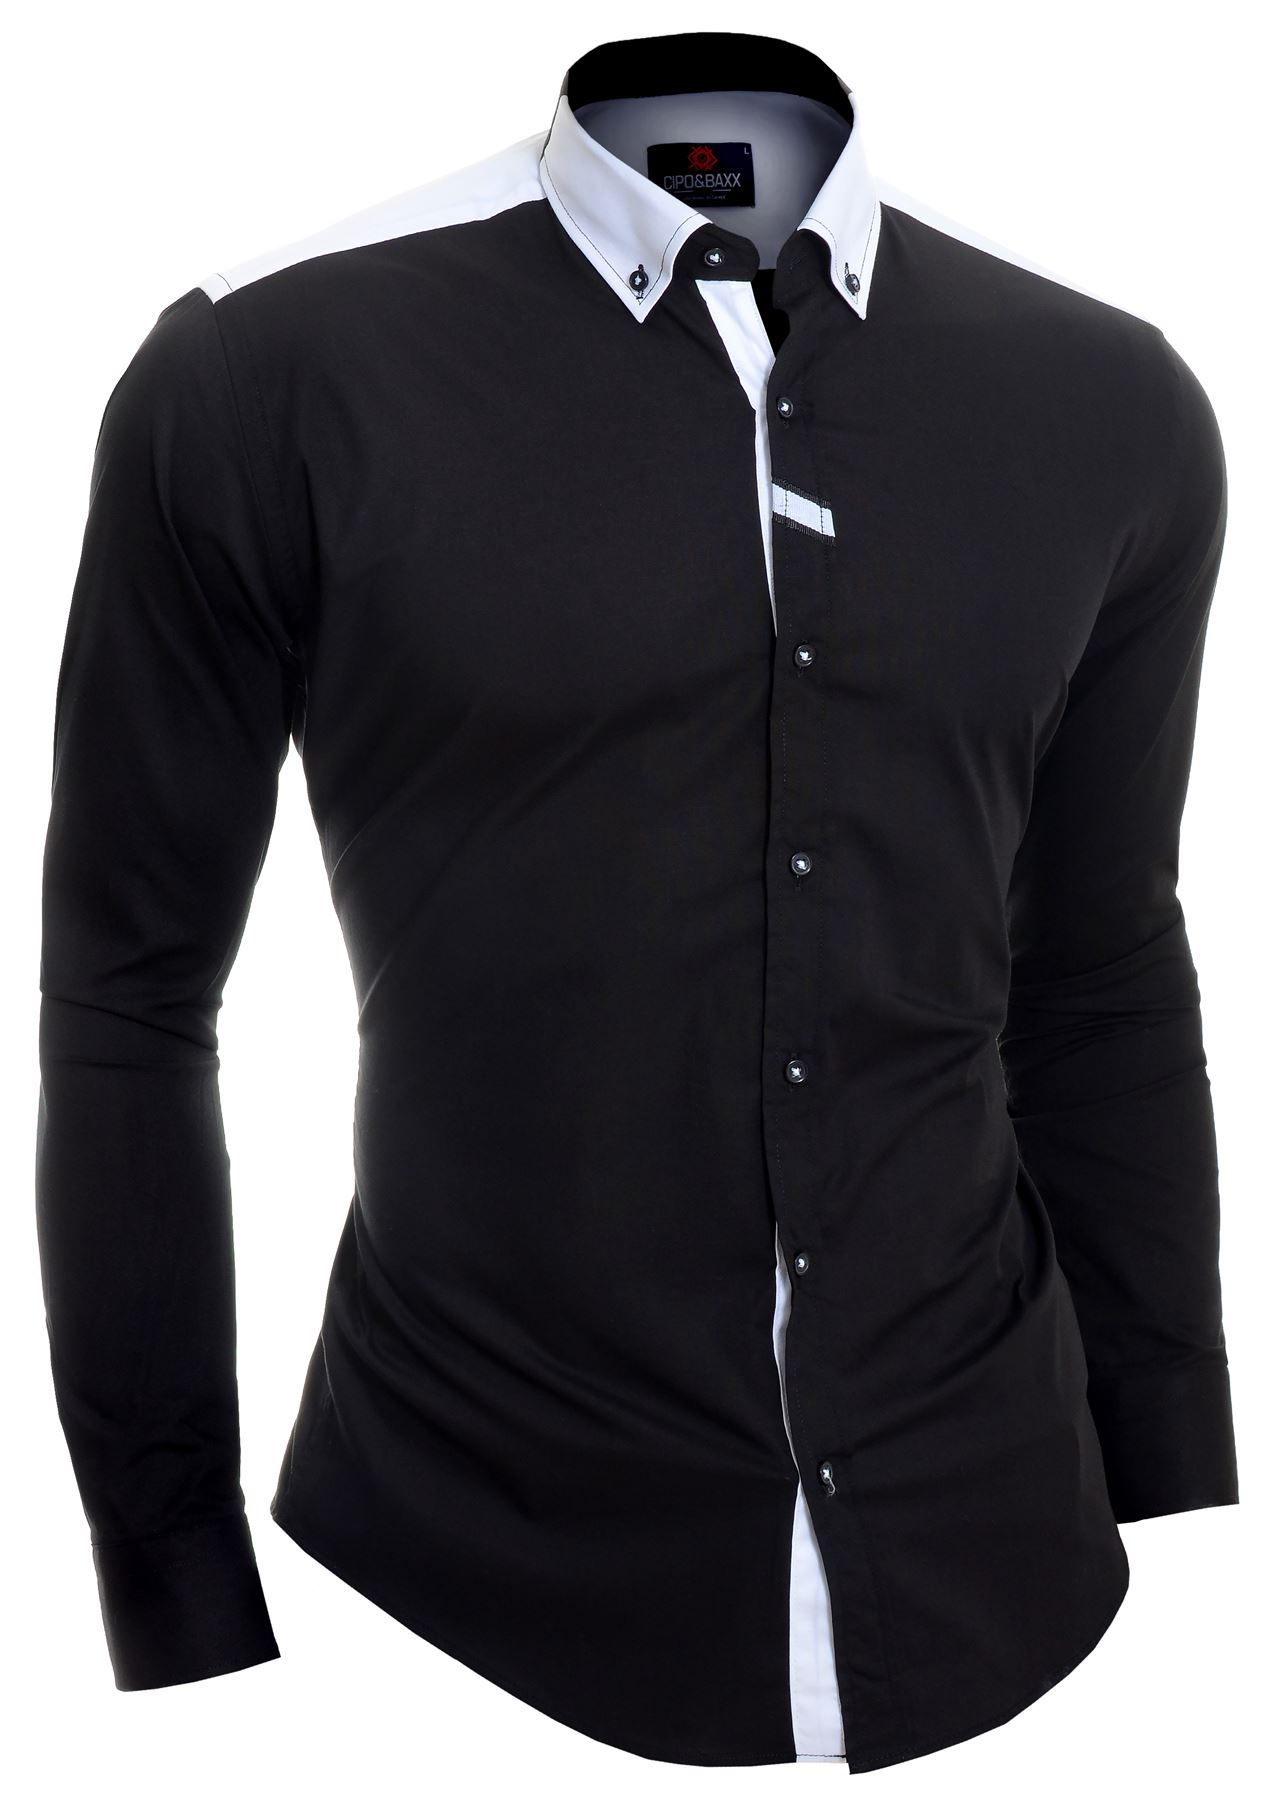 Cipo-amp-Baxx-Designer-Men-039-s-Elegant-Shirt-White-Black-Cotton-Slim-Contrast-Cuffs thumbnail 3